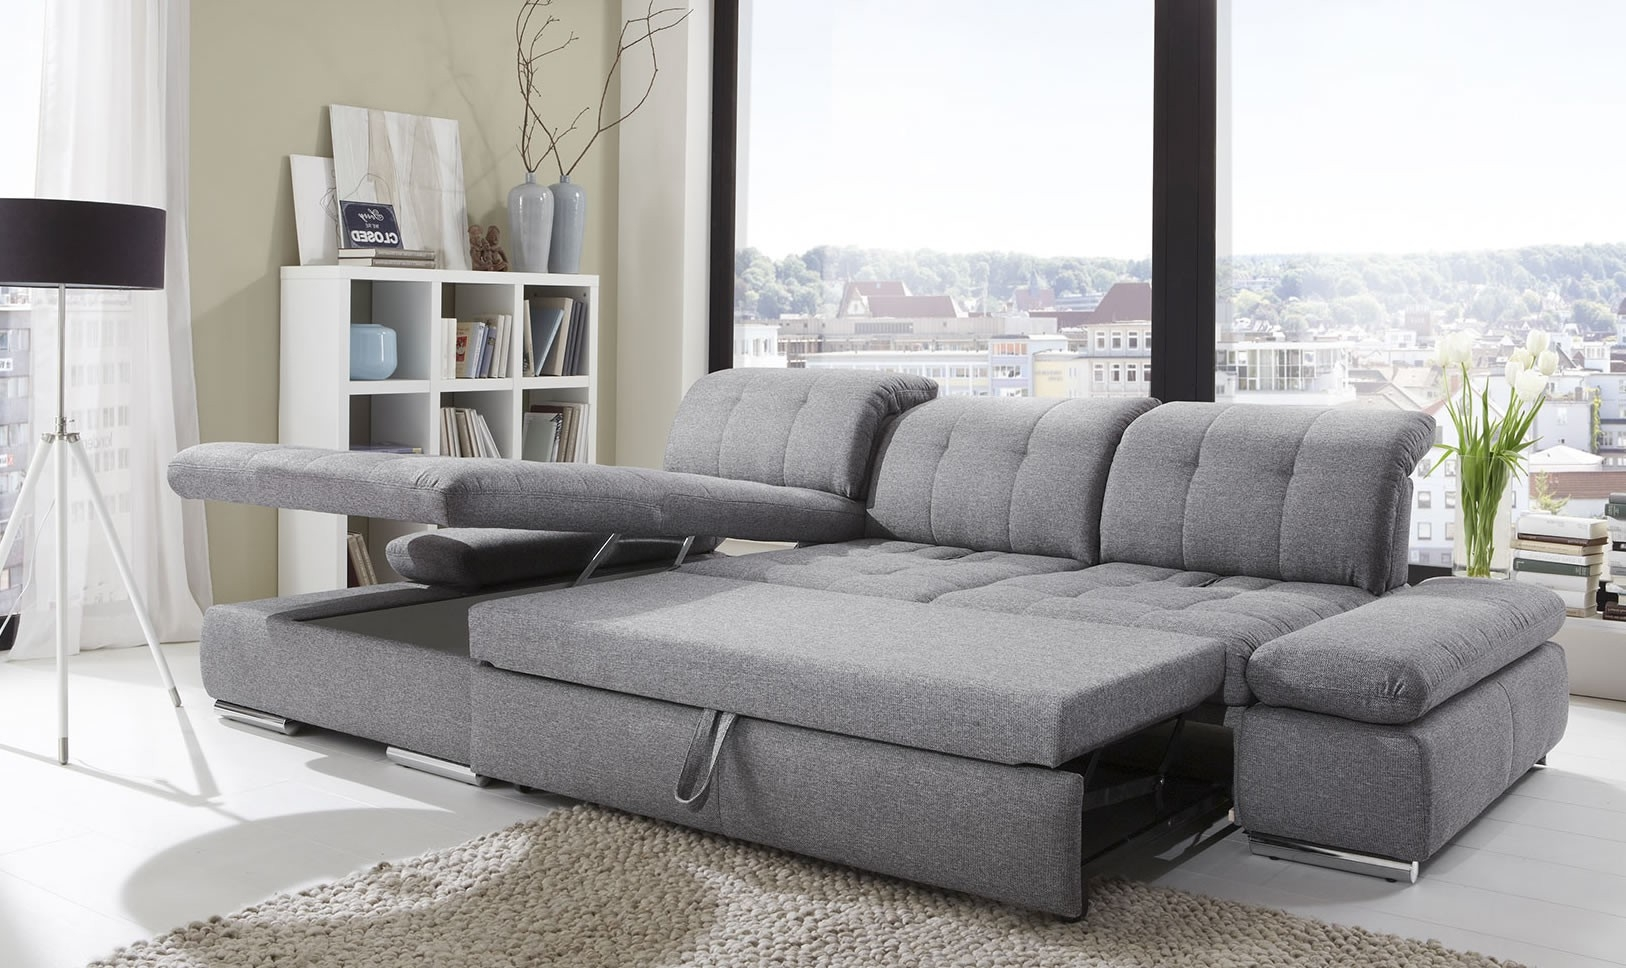 Alpine Sectional Sleeper Sofa Left Arm Chaise Facing Durable Pertaining To Durable Sectional Sofa (Image 5 of 15)